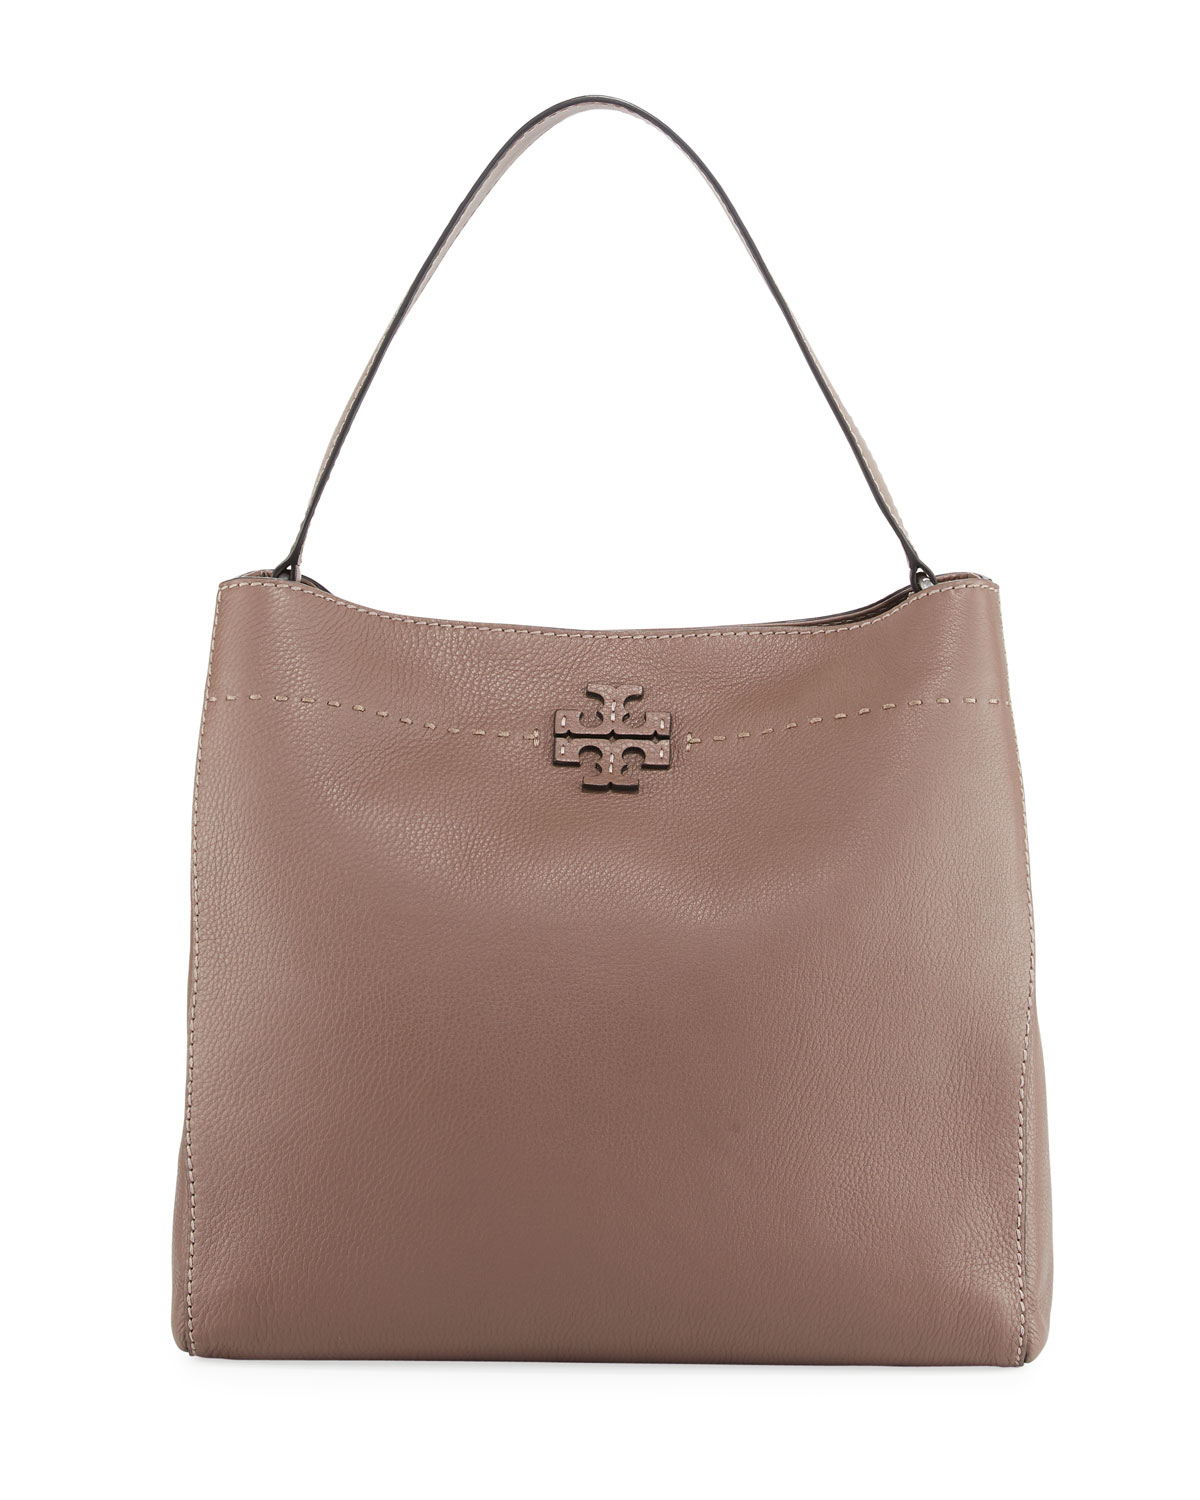 190dd2ae6c3d Tory Burch McGraw Pebbled Leather Hobo Bag